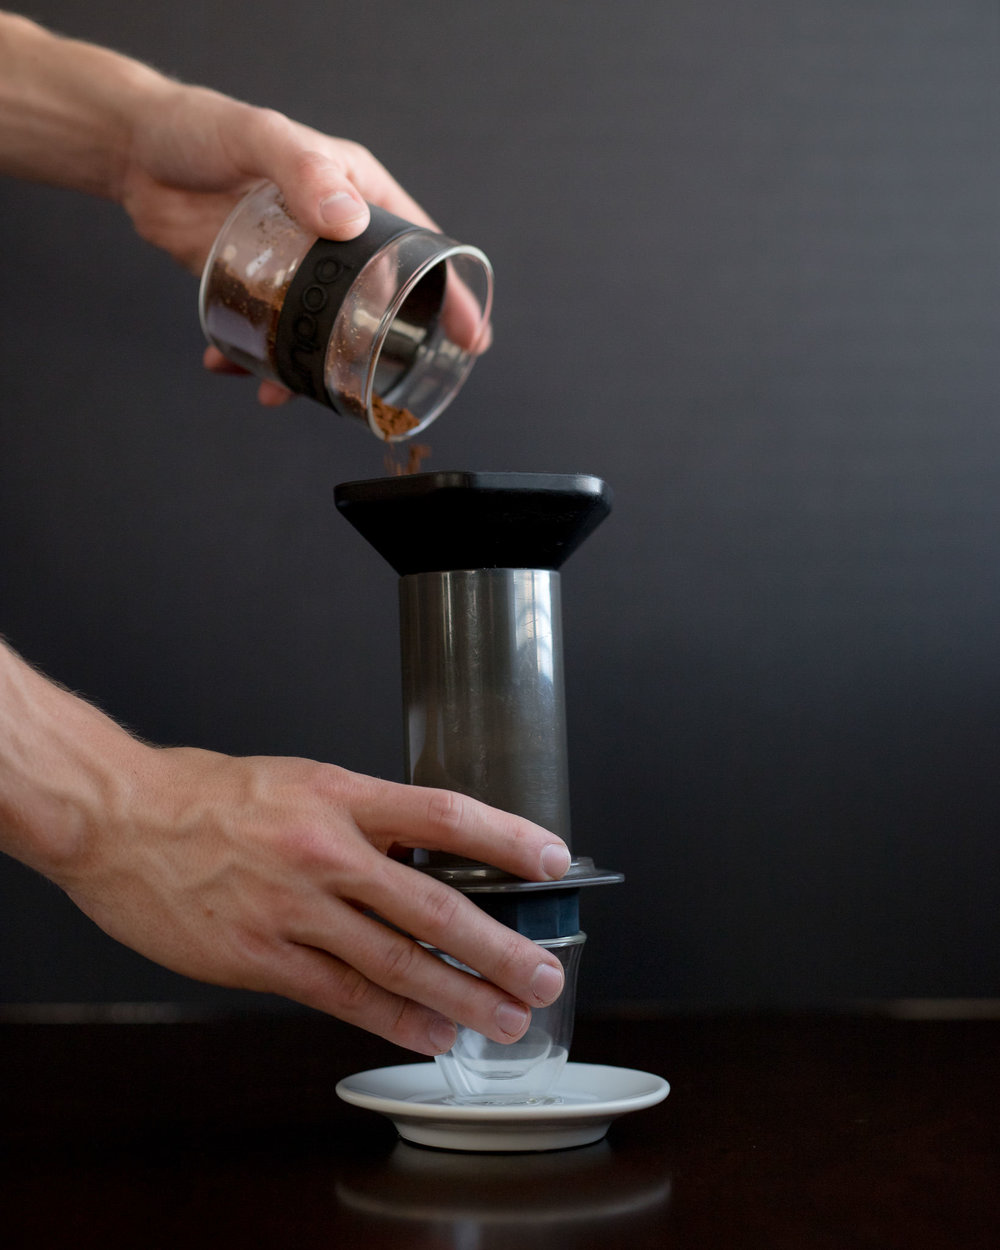 Add 20g of finely ground coffee to the Aeropress